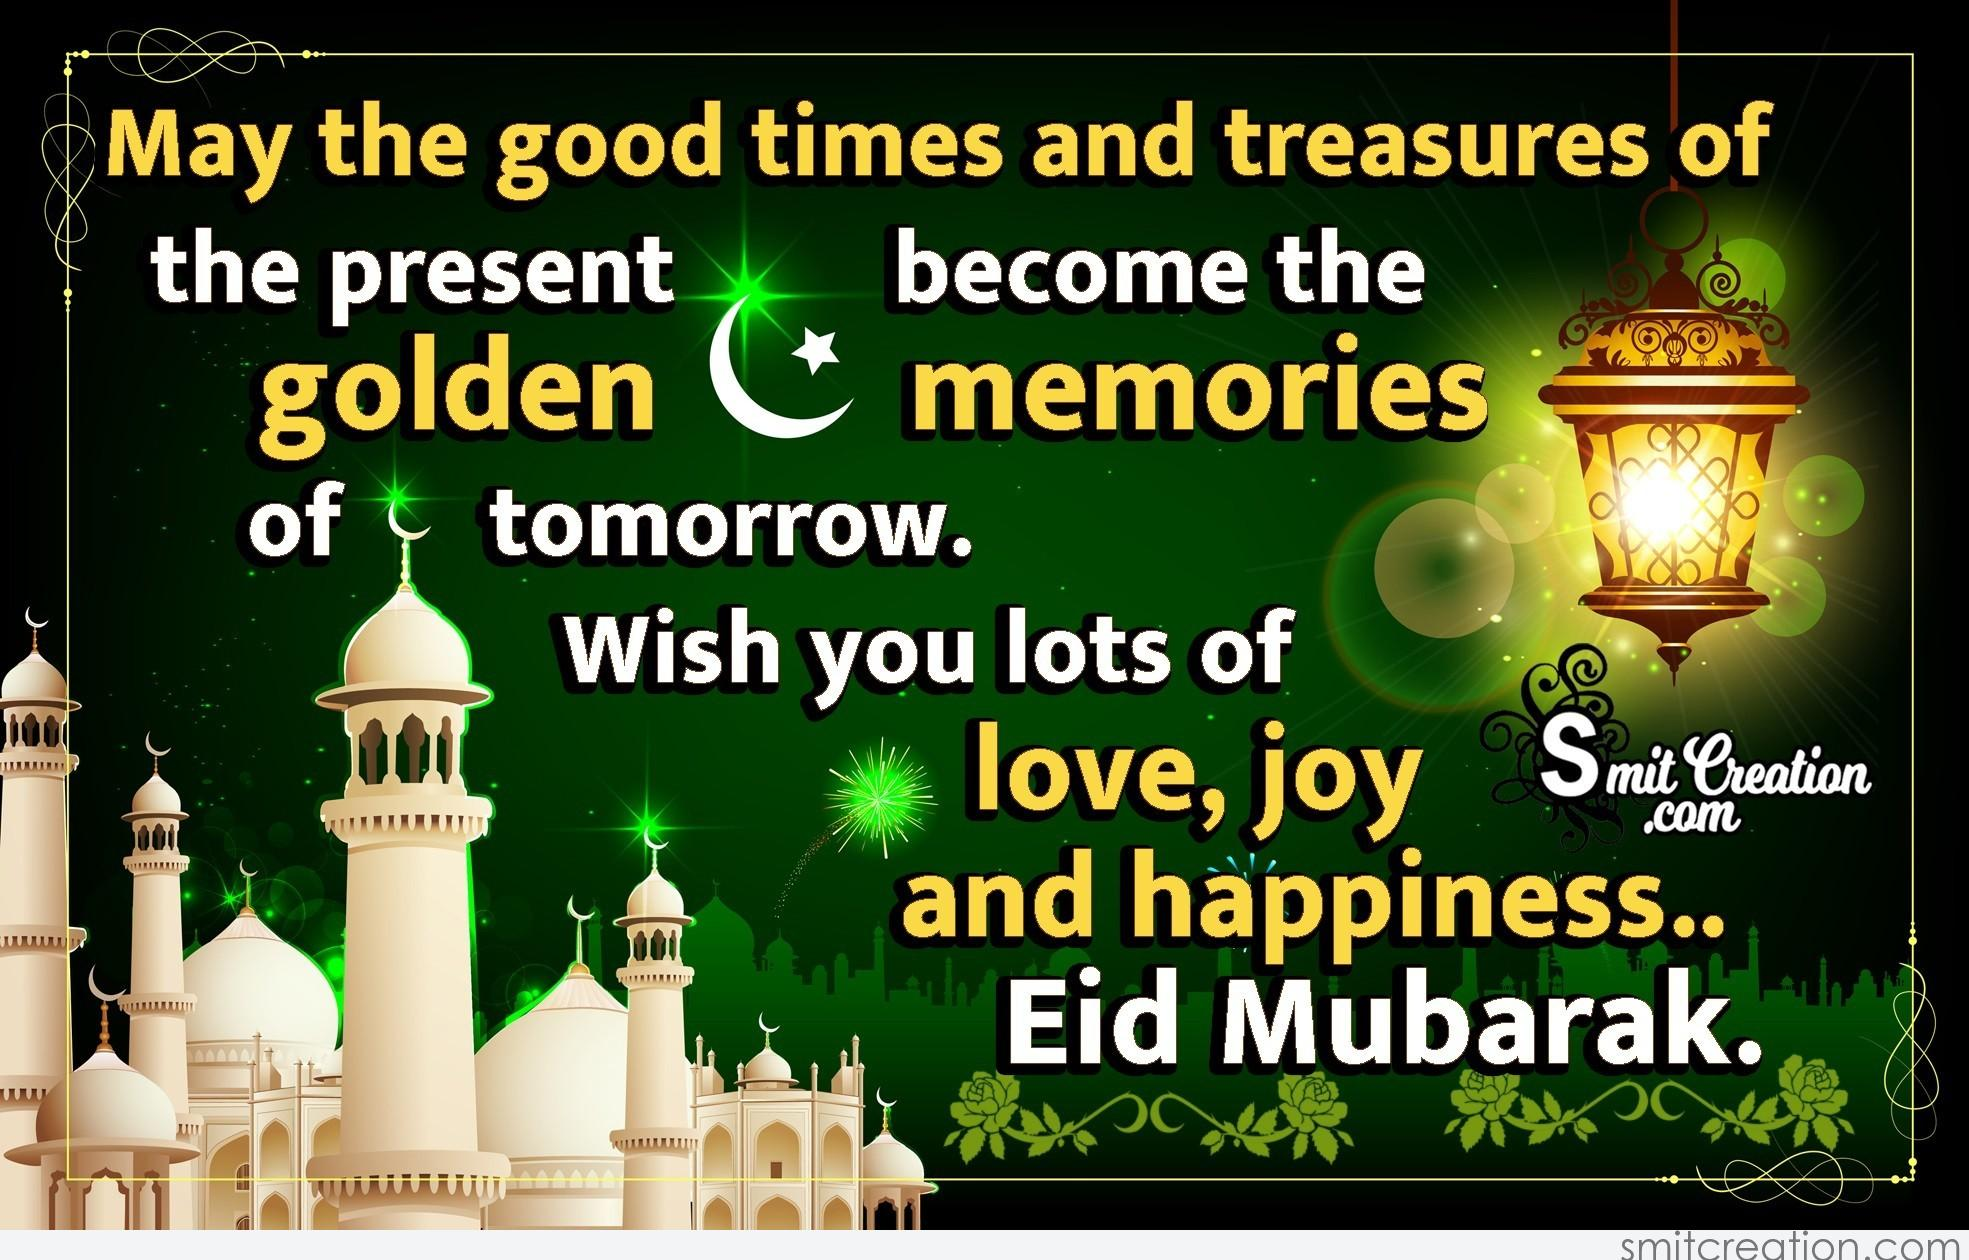 Ramzan Eid Pictures And Graphics Smitcreation Page 2